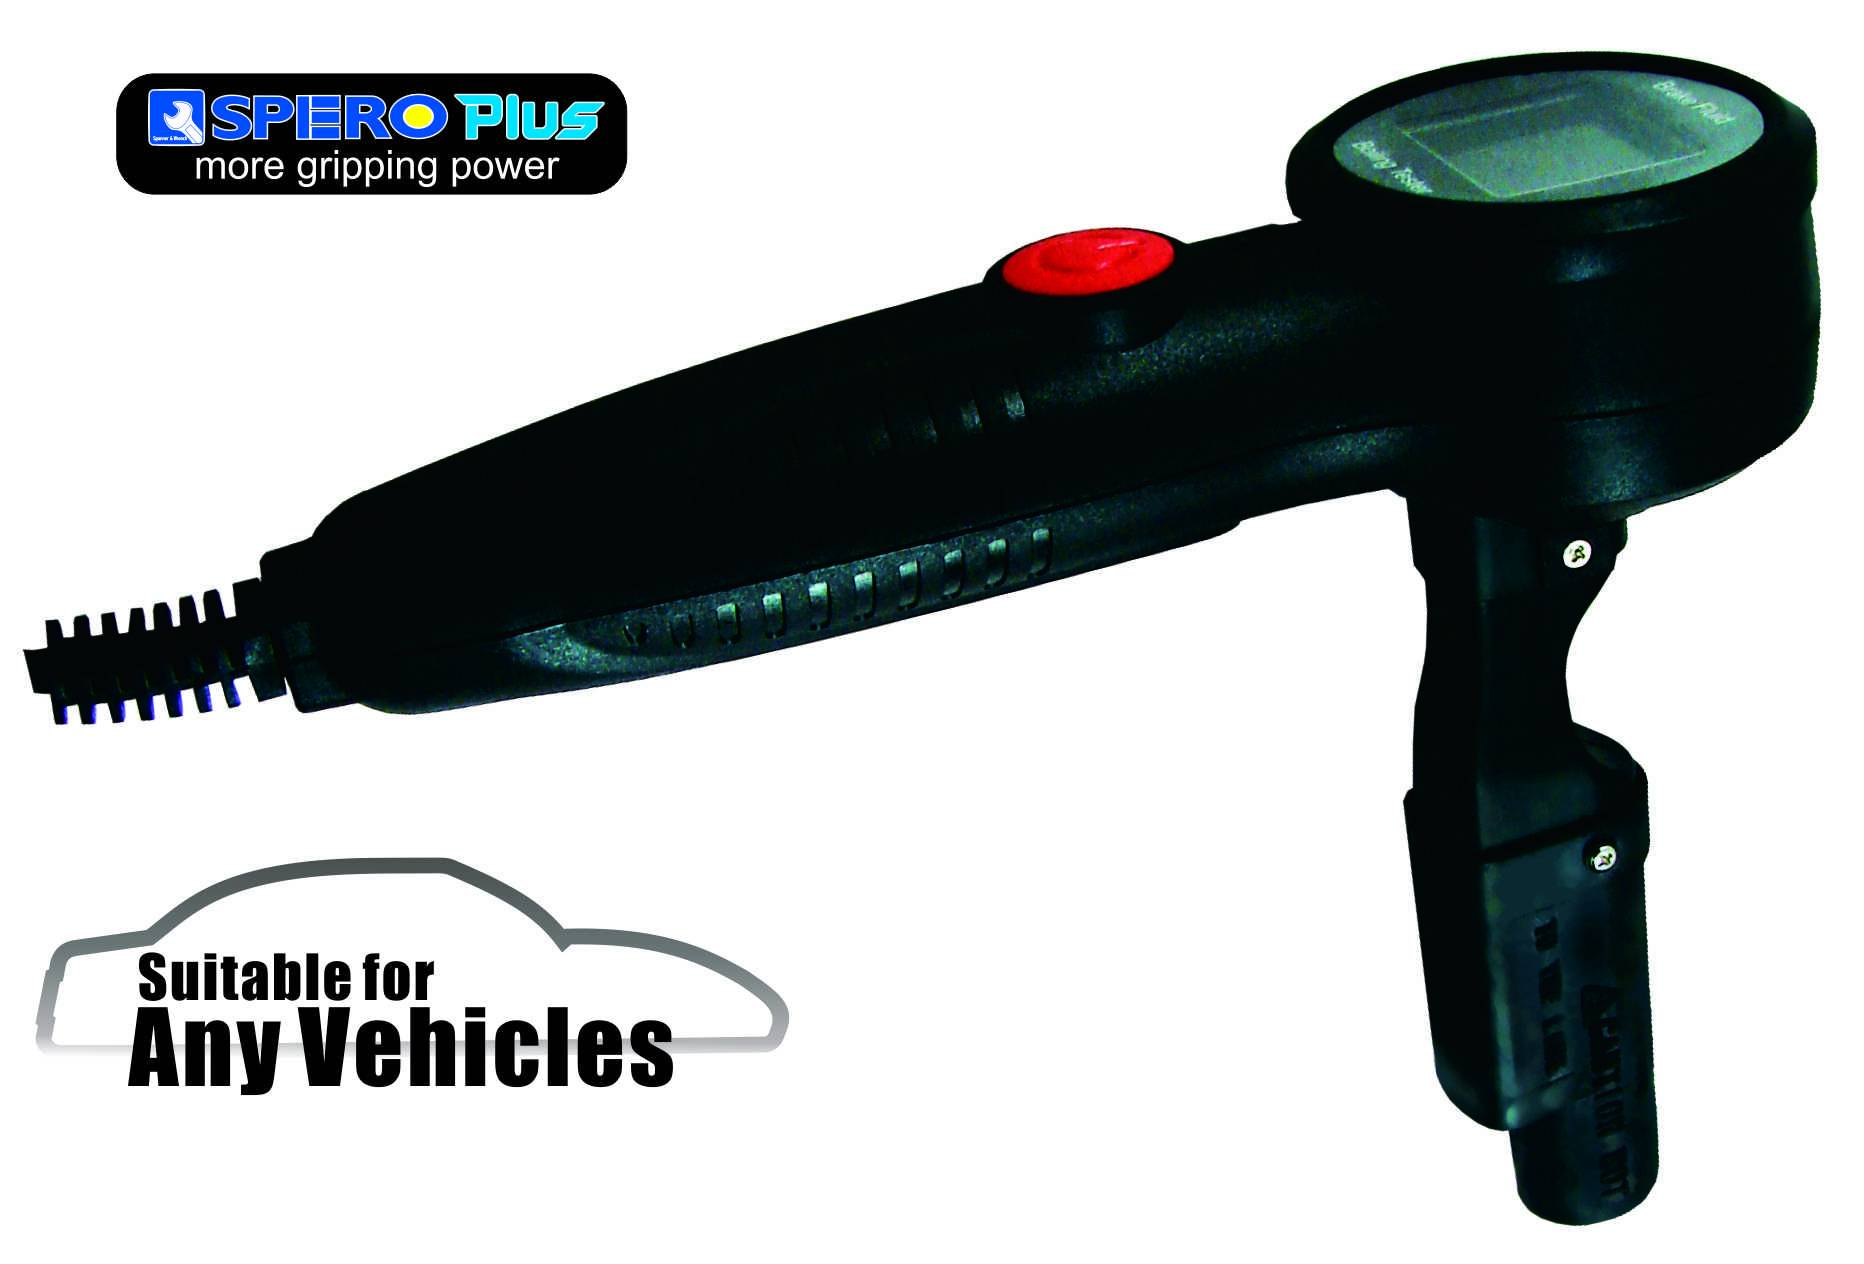 Brake Fluid Tester - Detection of brake oil containing water and disability